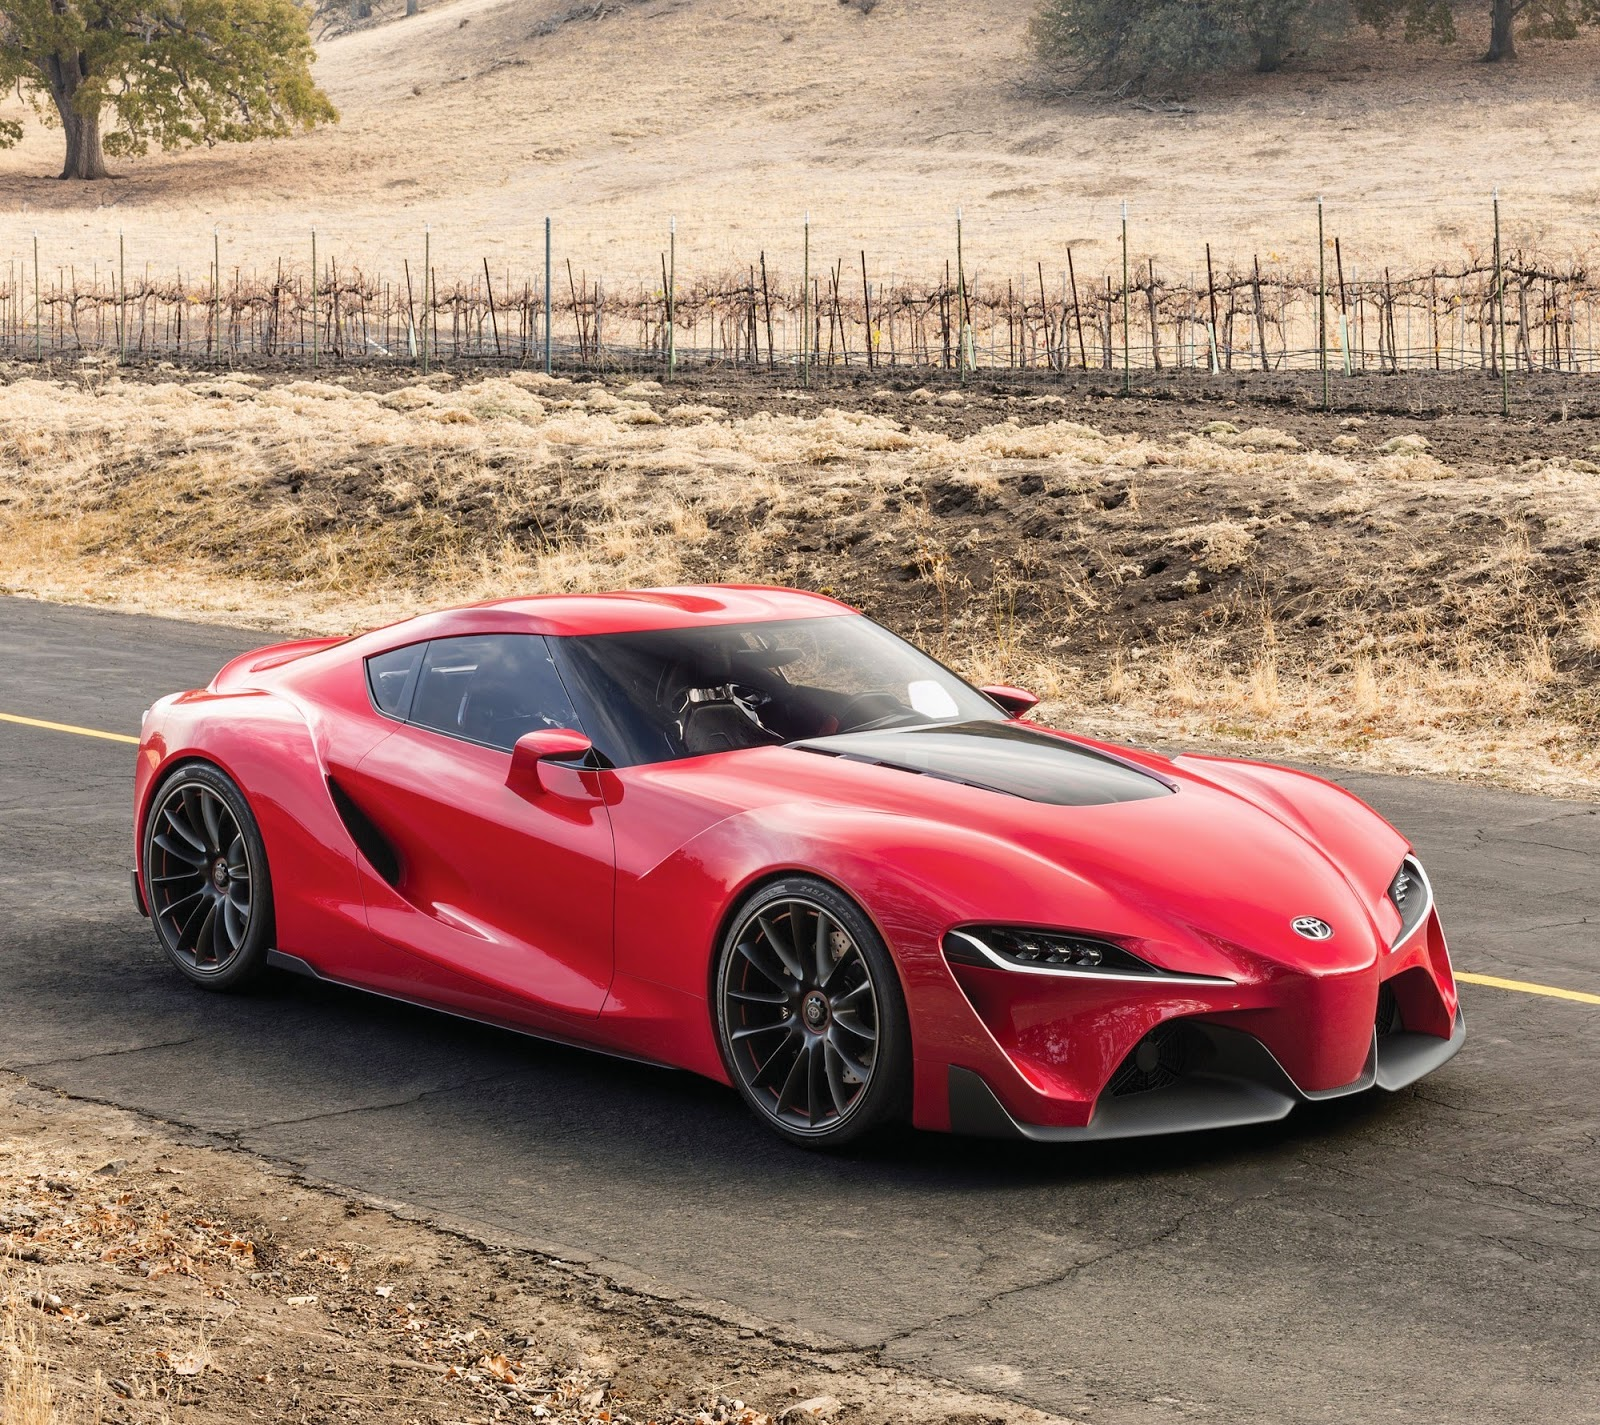 Toyota Ft 1 >> Toyota Ft 1 Concept Sets The Pace For Future Design